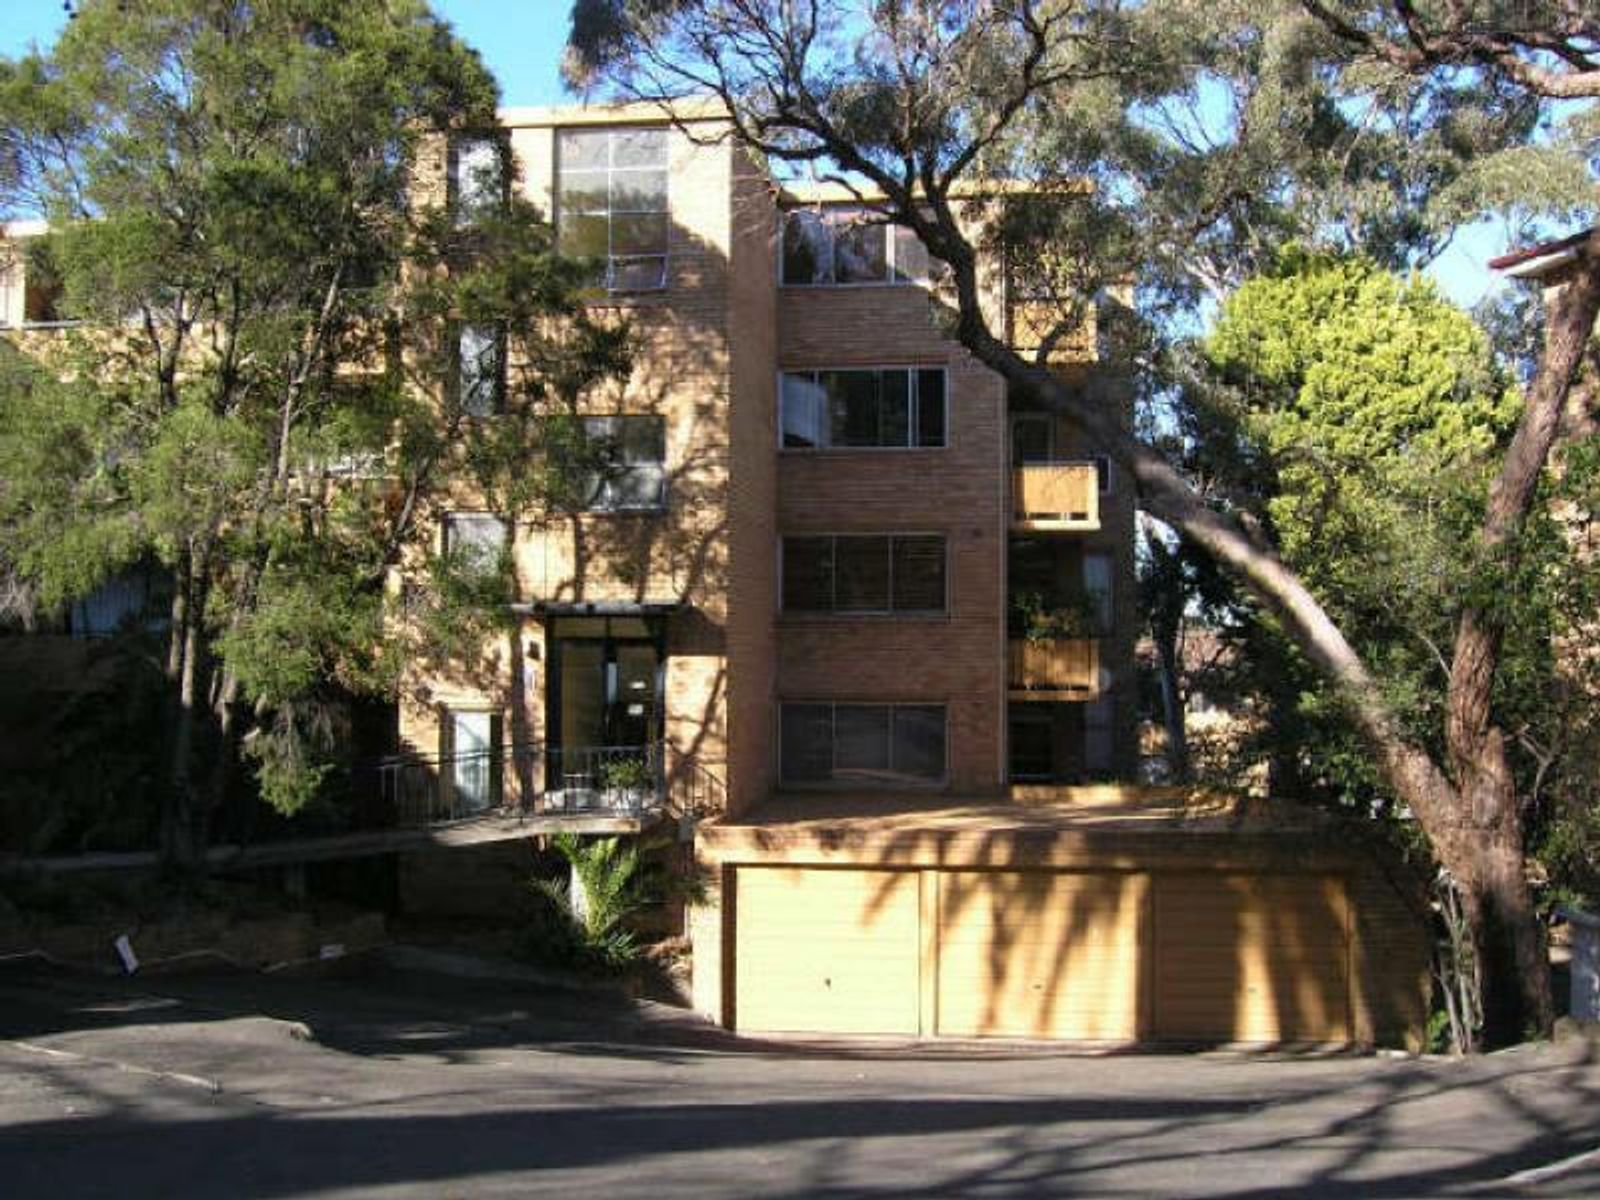 19/400 Mowbray Road, Chatswood, NSW 2067